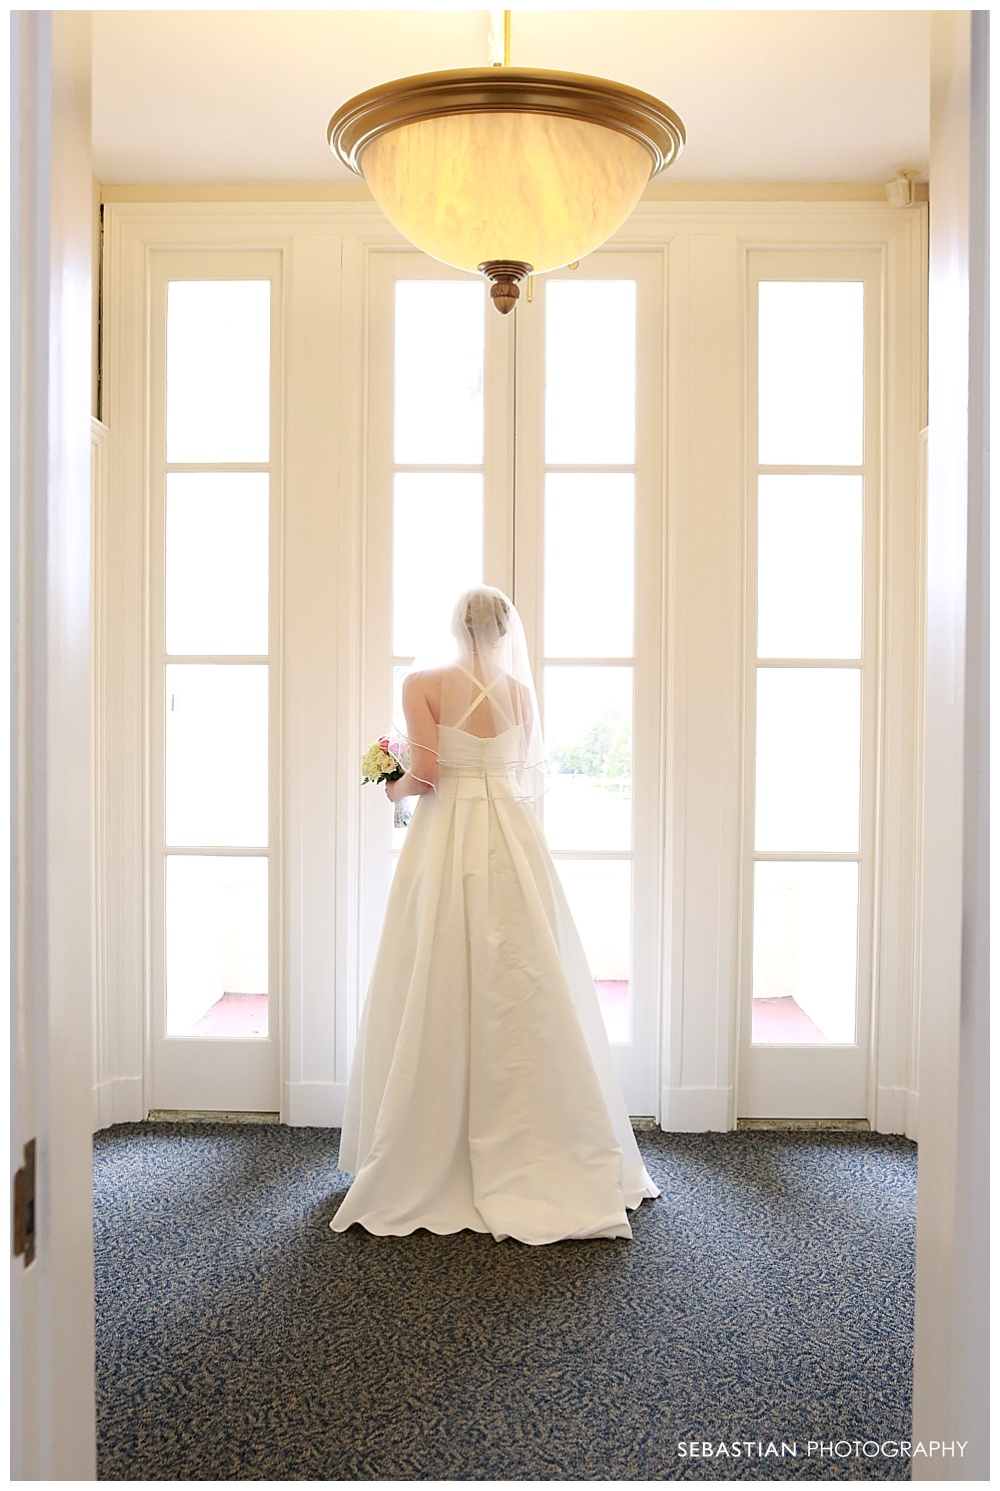 Sebastian_Photography_Wadsworth_Mansion_Middletown_CT_Wedding_Portraits_Spring05.jpg